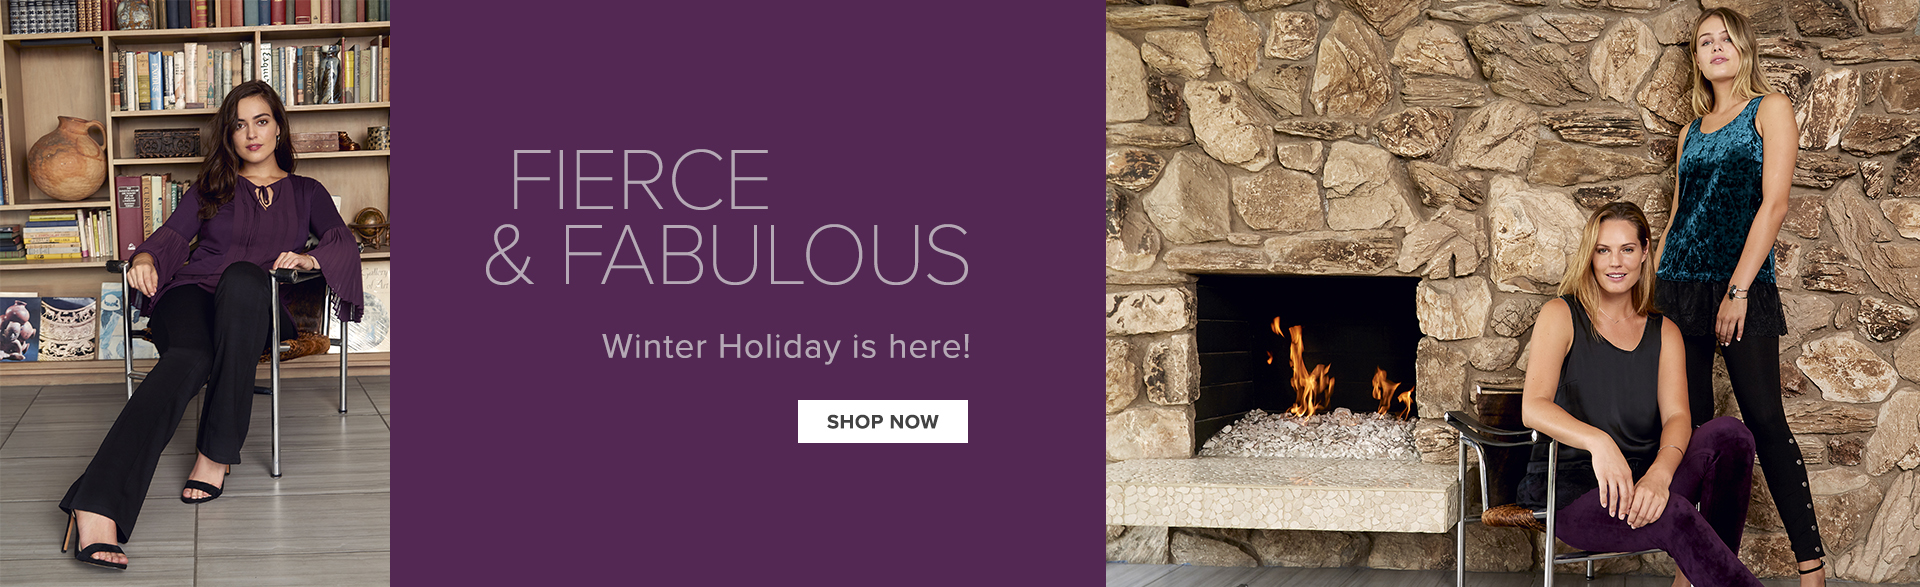 Fierce and Fabulous - Winter Holiday is here